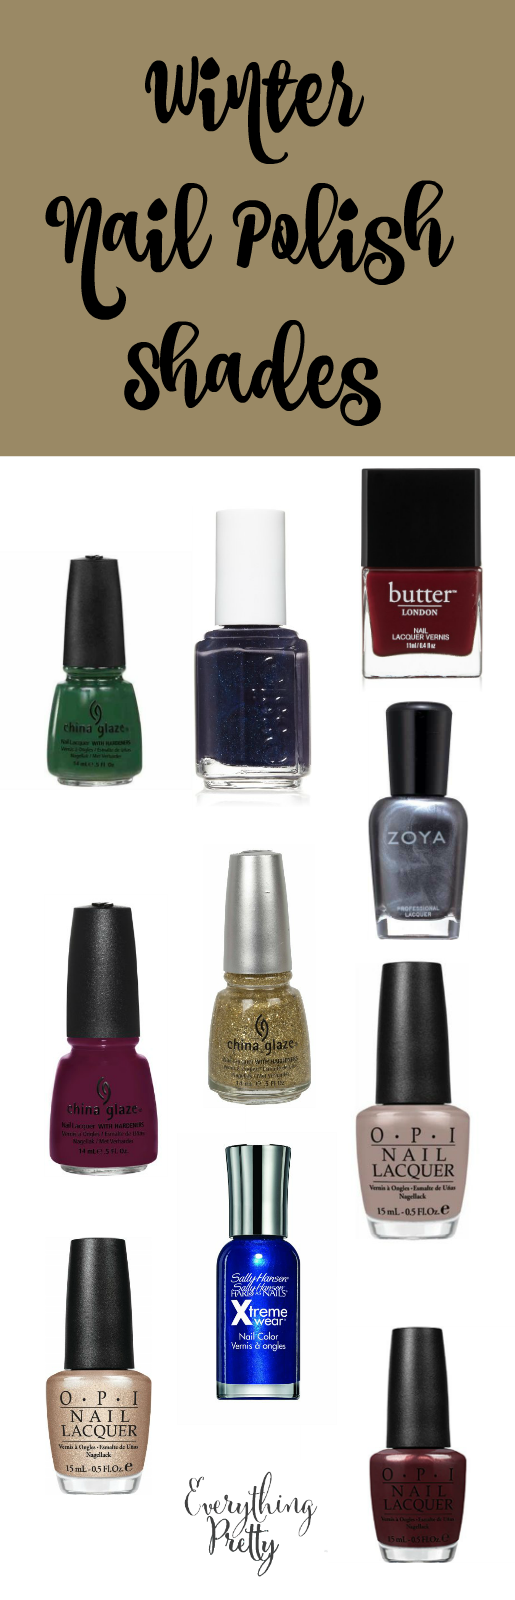 Top 10 Nail Polishes for Winter